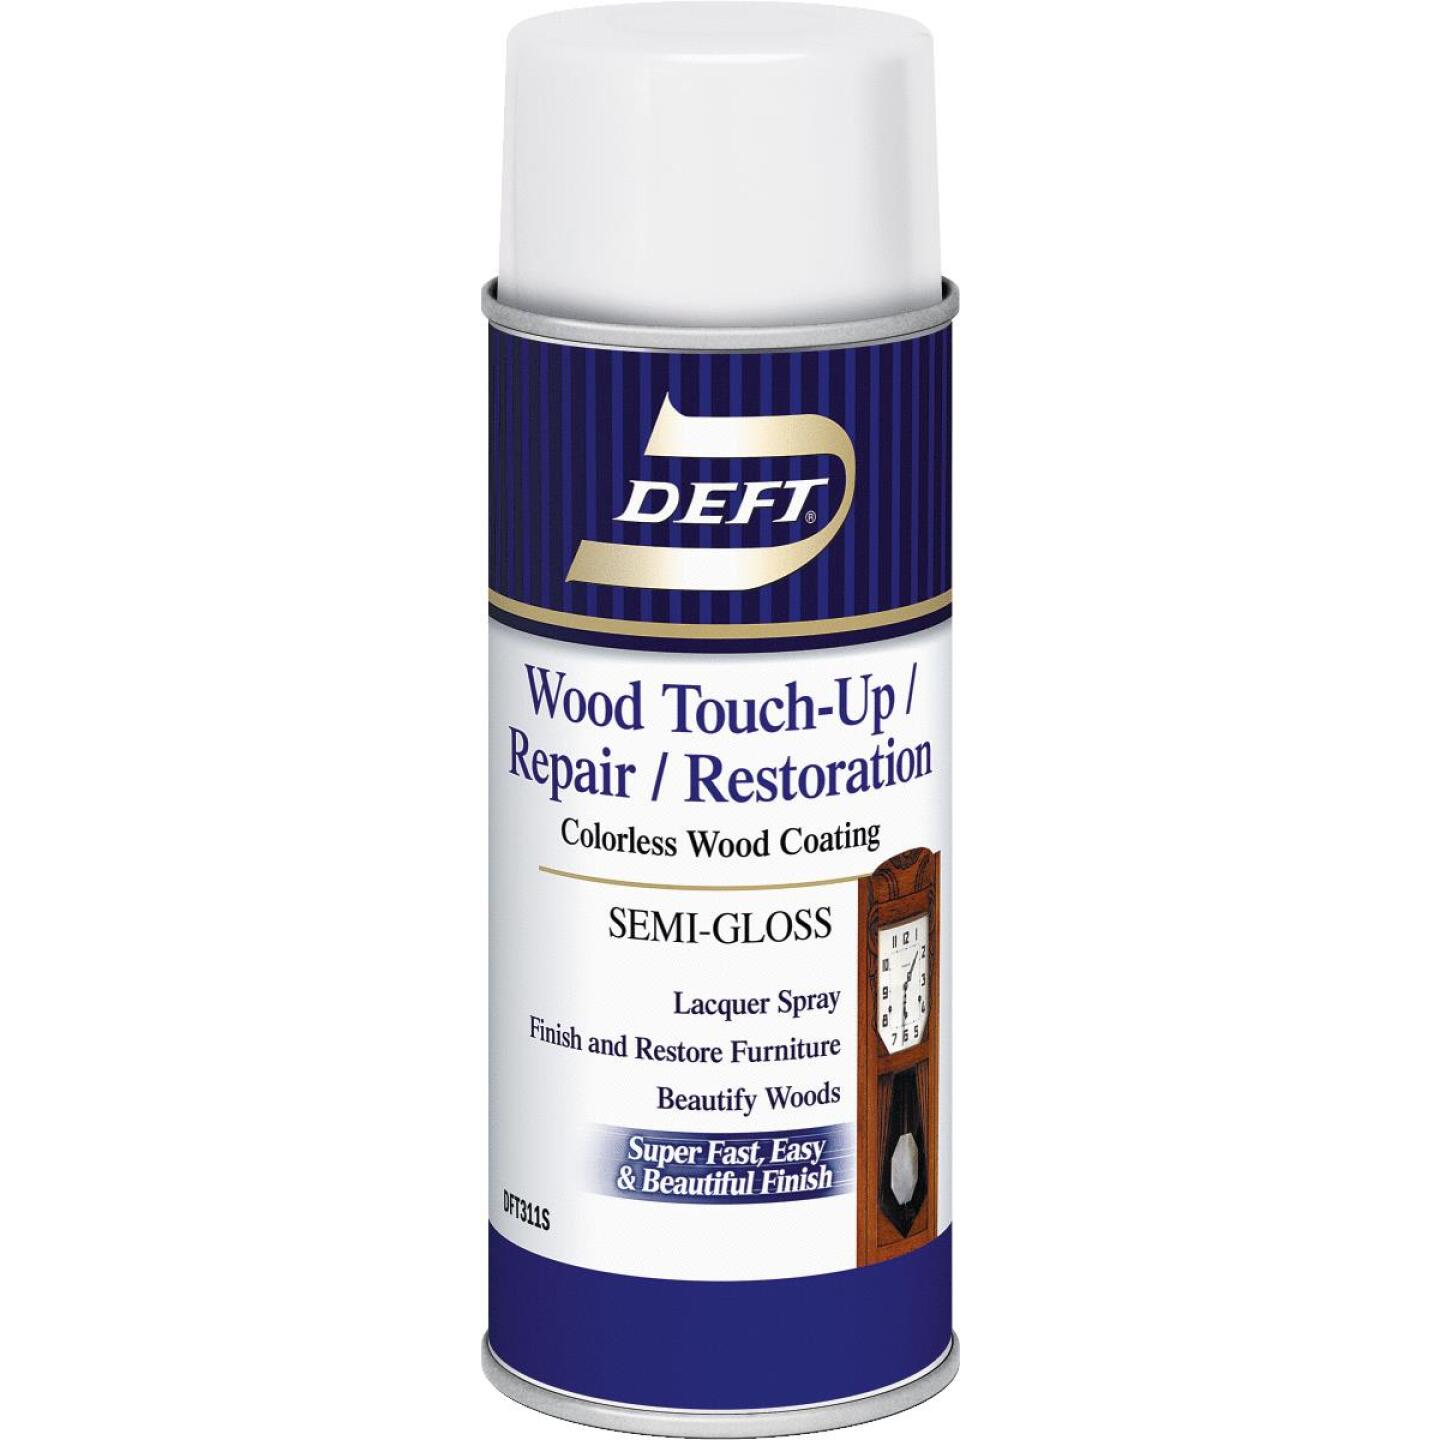 Deft VOC Compliant 12.25 Oz. Semi-Gloss Clear Wood Finish Interior Spray Lacquer Image 1